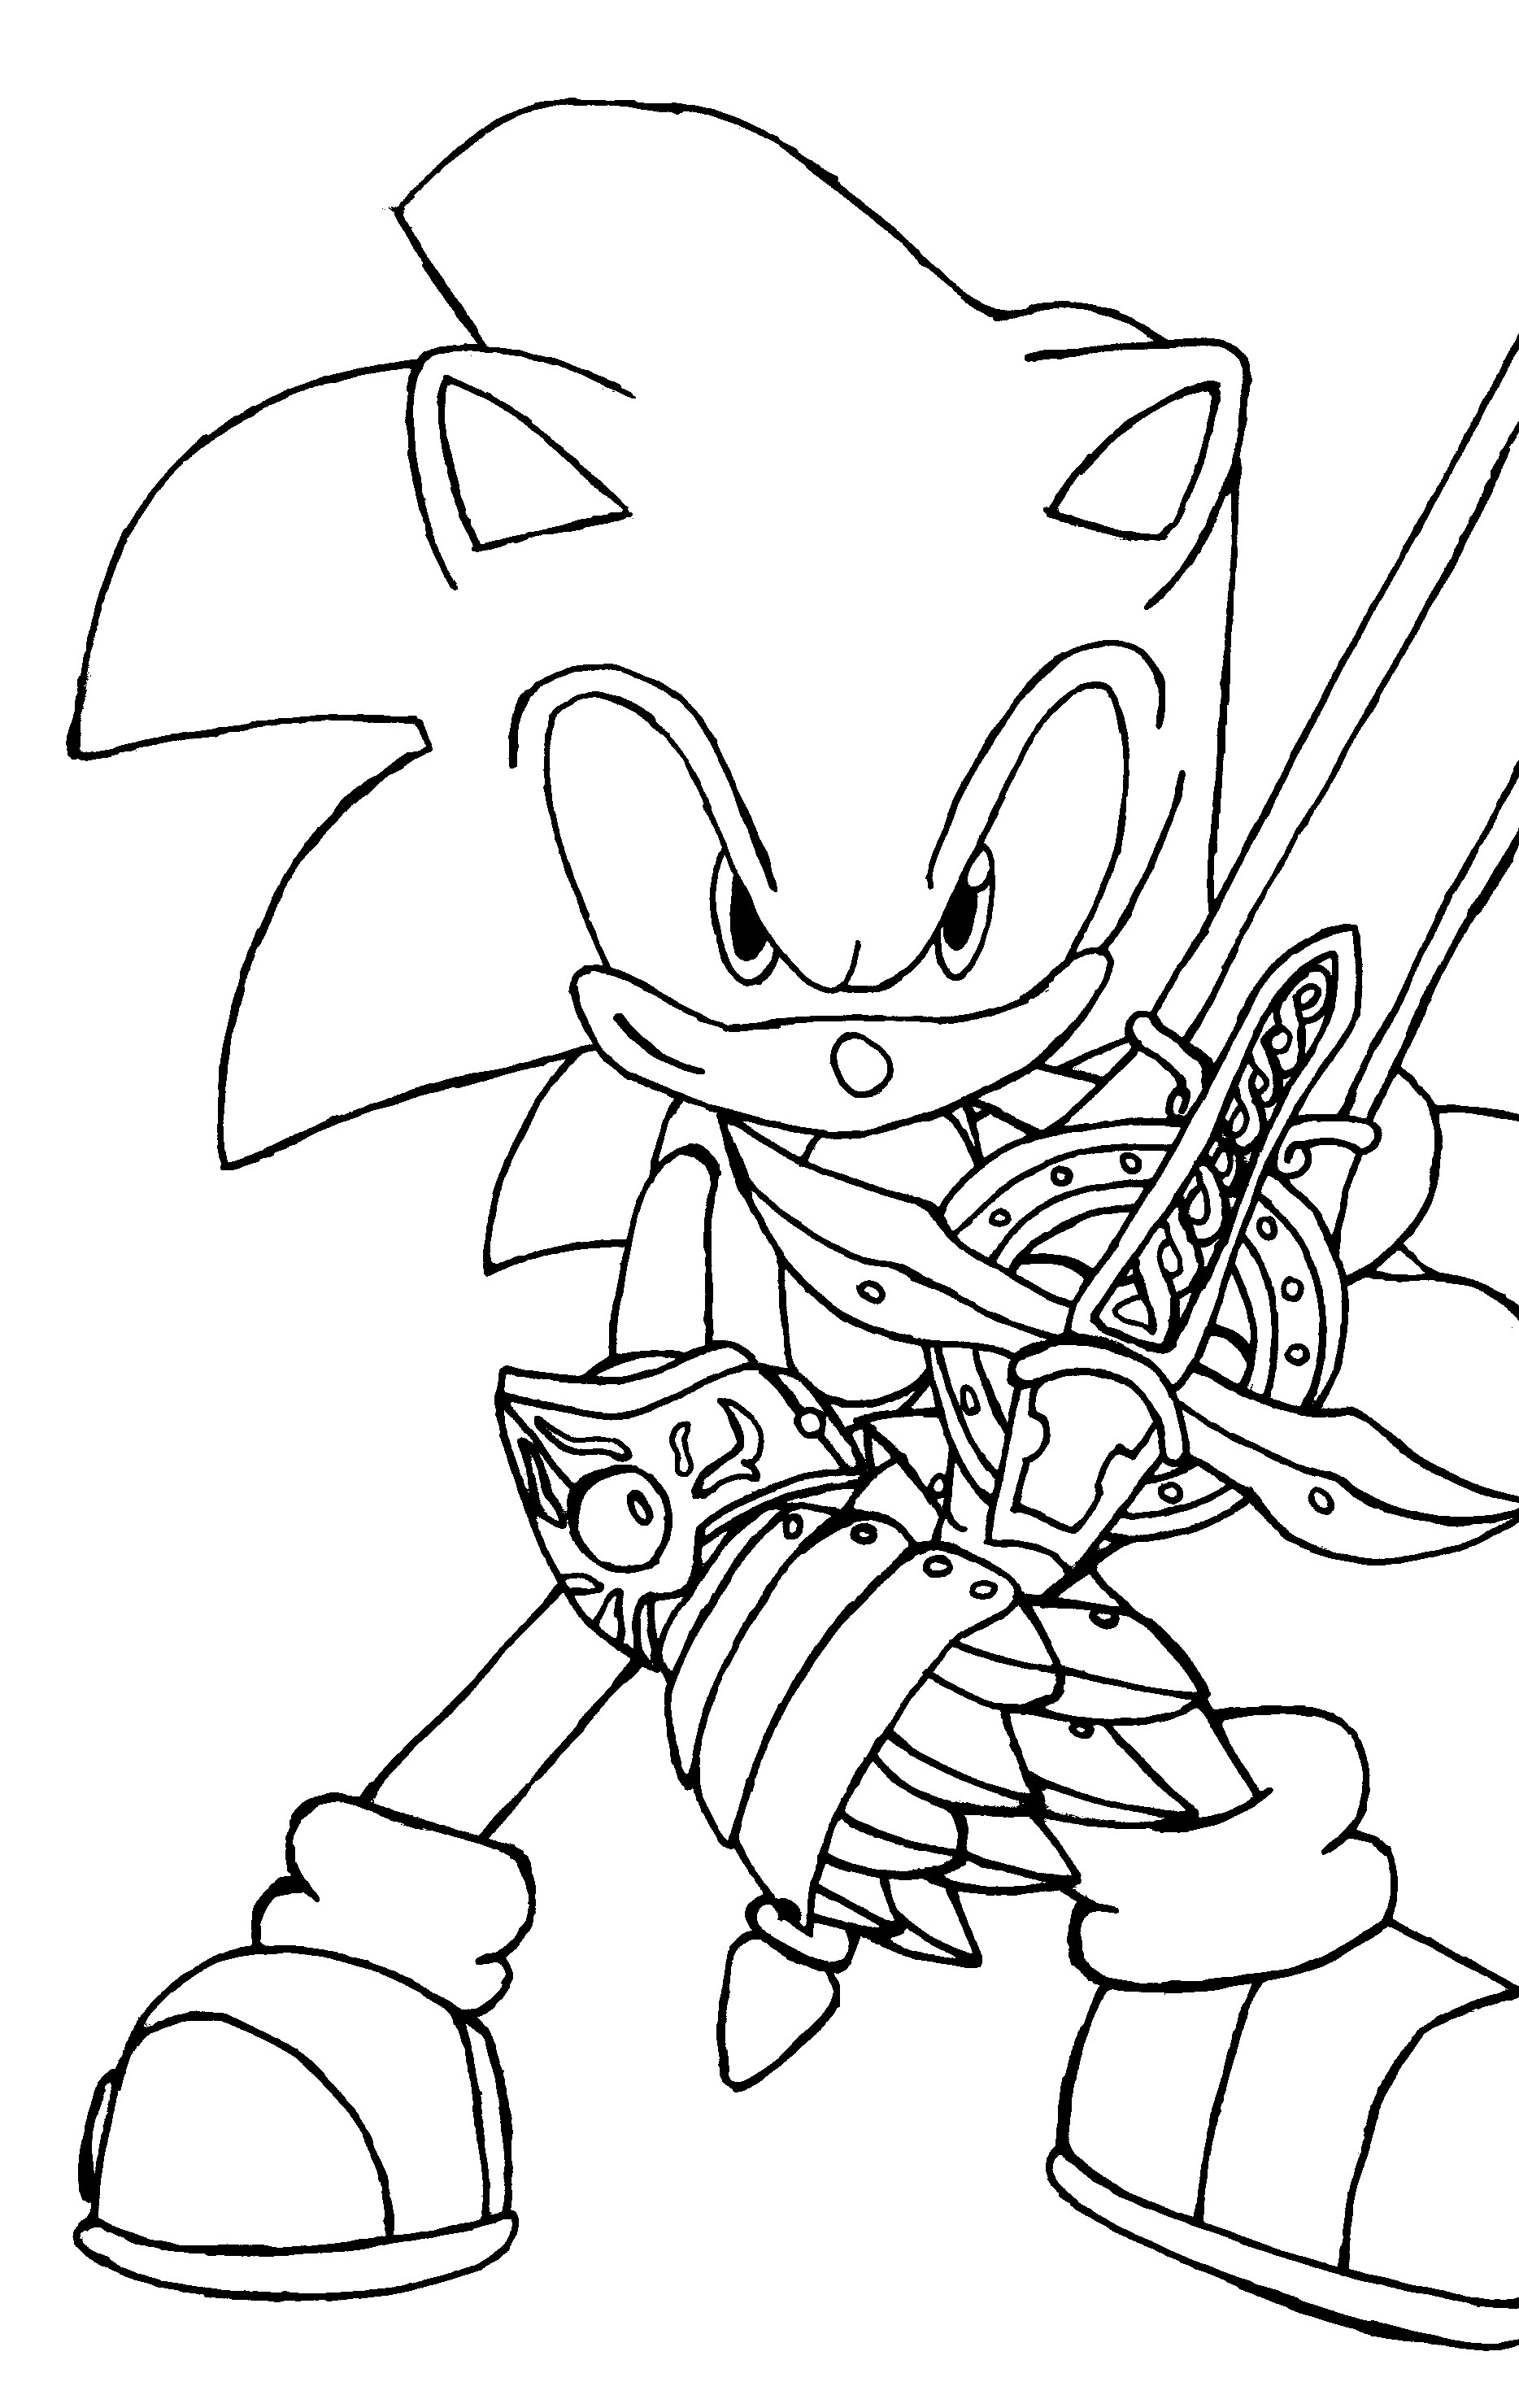 Sonic Coloring Page Free Printable Sonic The Hedgehog Coloring Pages For Kids